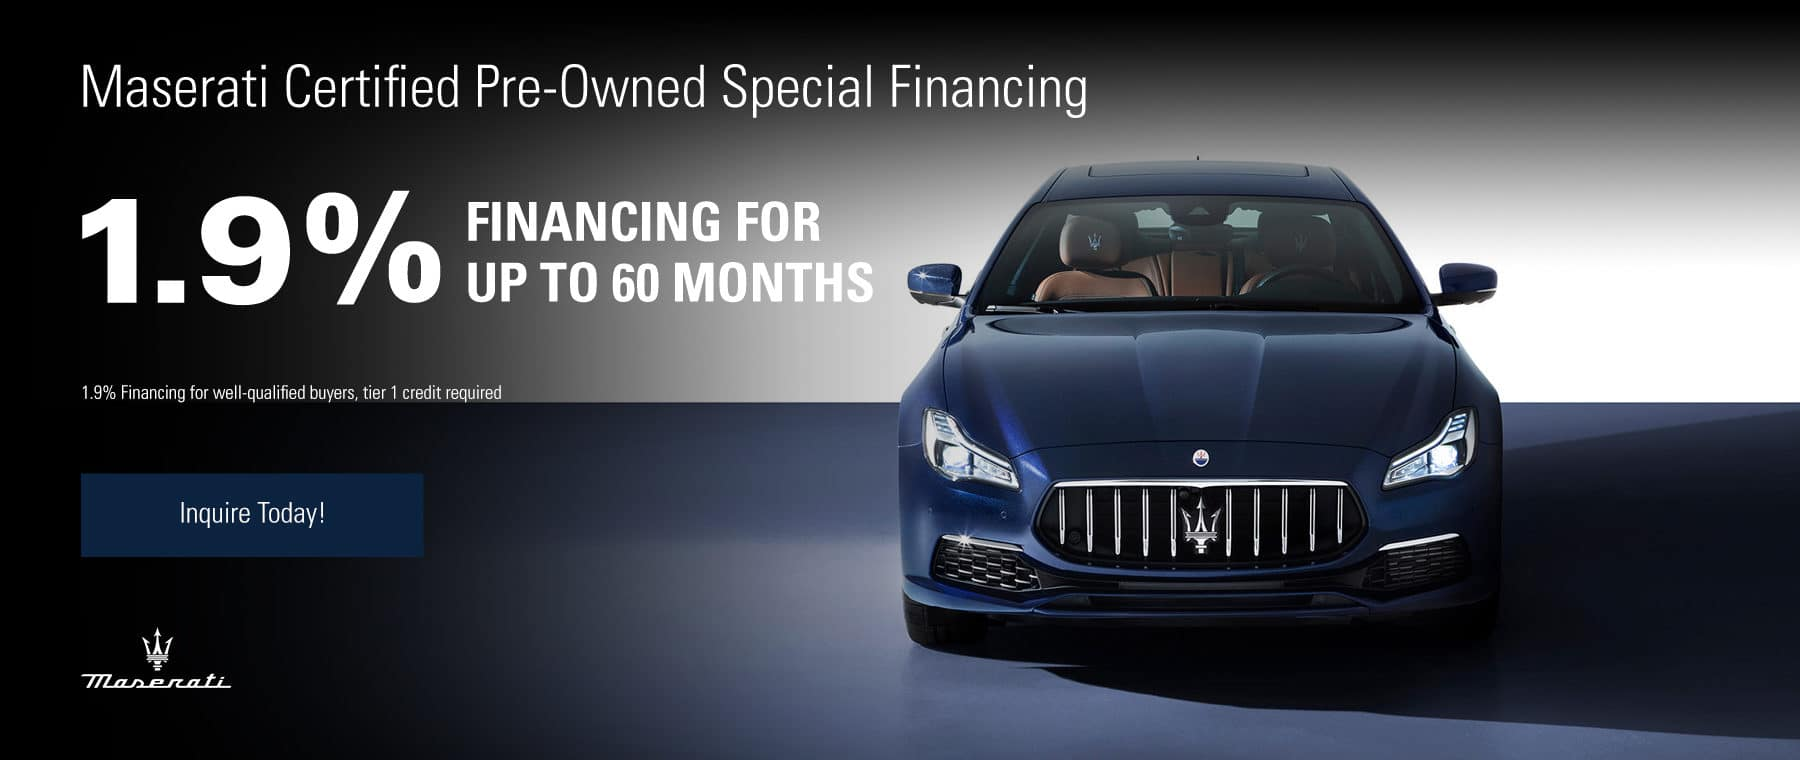 Maserati Certified Pre-Owned Special Financing 1.9% Financing for up to 60 months